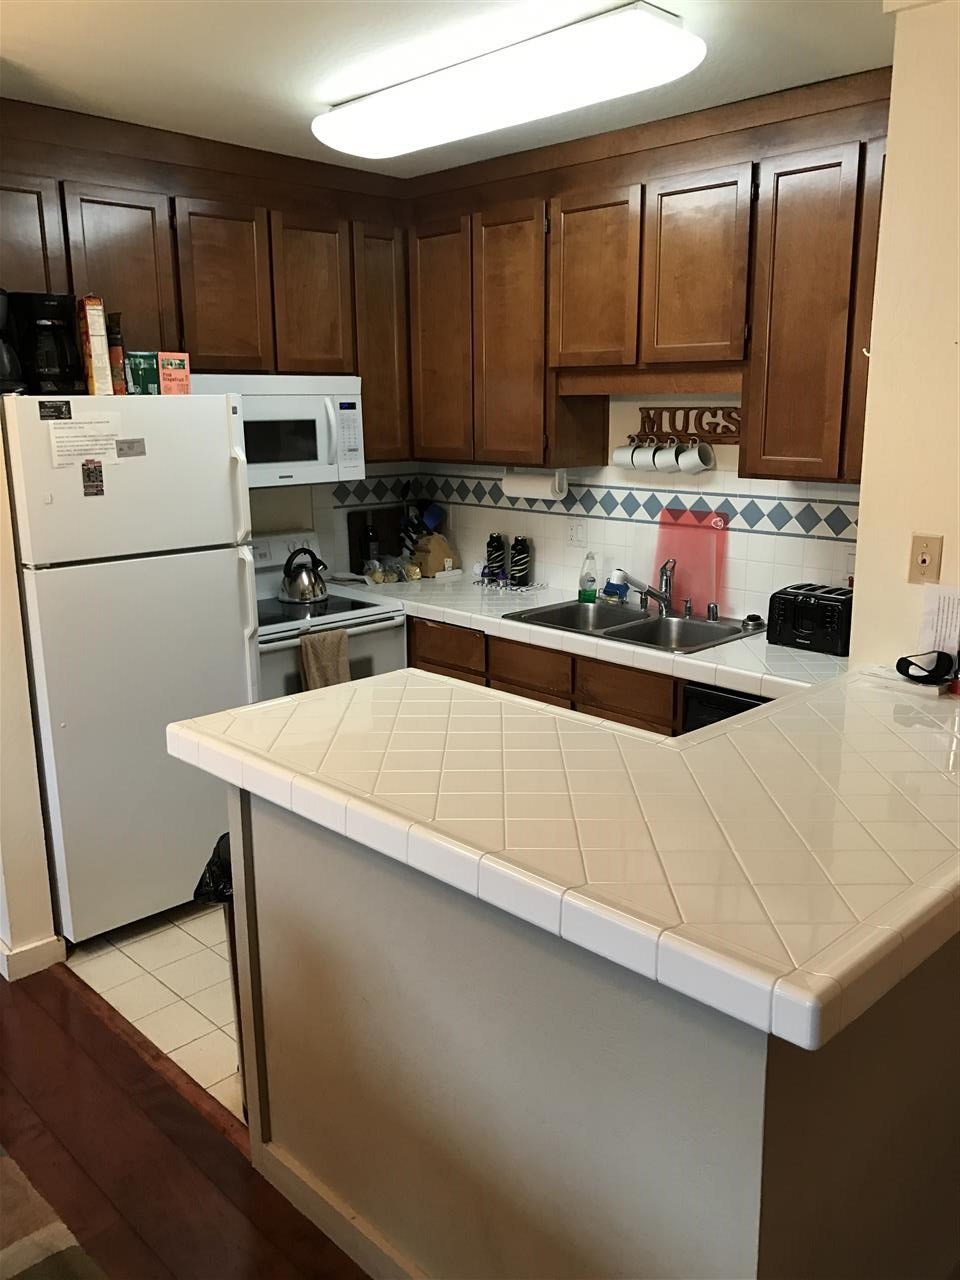 Additional photo for property listing at 1800 Squaw Valley Road 1800 Squaw Valley Road Olympic Valley, California 96146 United States